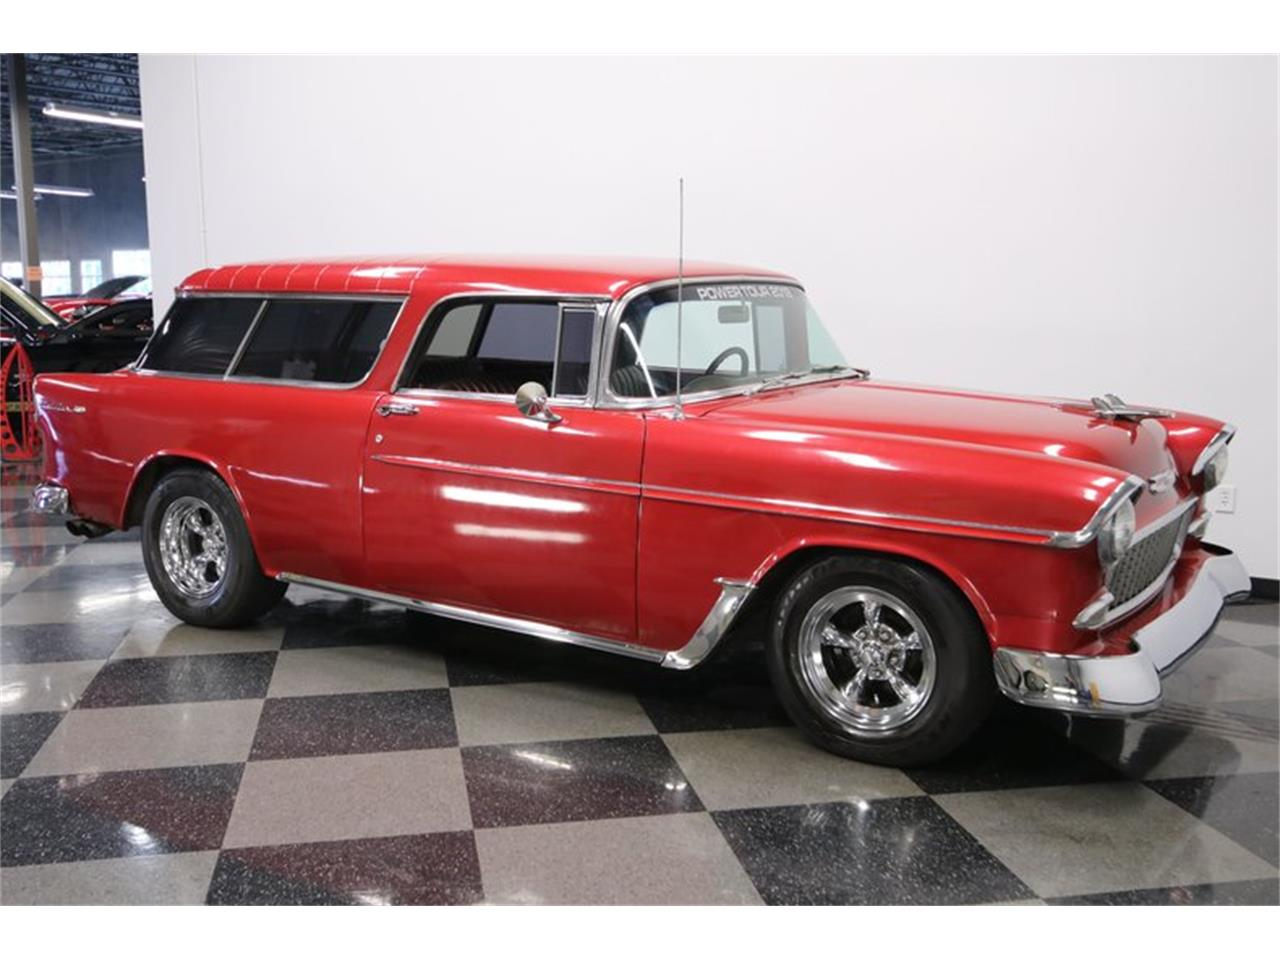 1955 Chevrolet Nomad (CC-1373909) for sale in Lutz, Florida